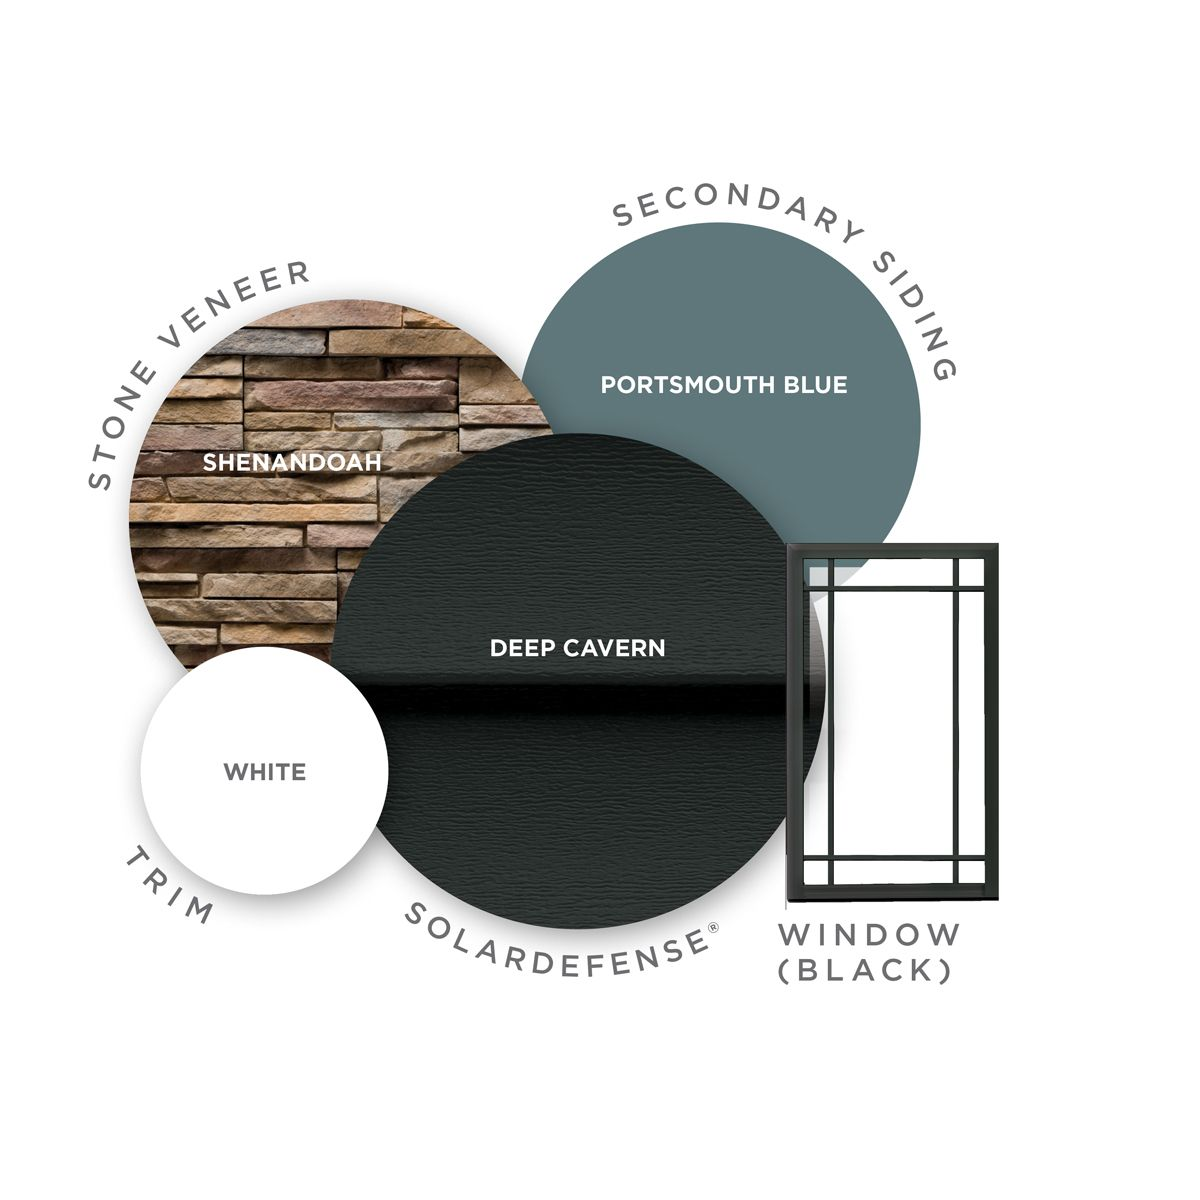 Home Exterior Design Tool: Combine Bold And Charming Colors To Create A One-of-a-kind